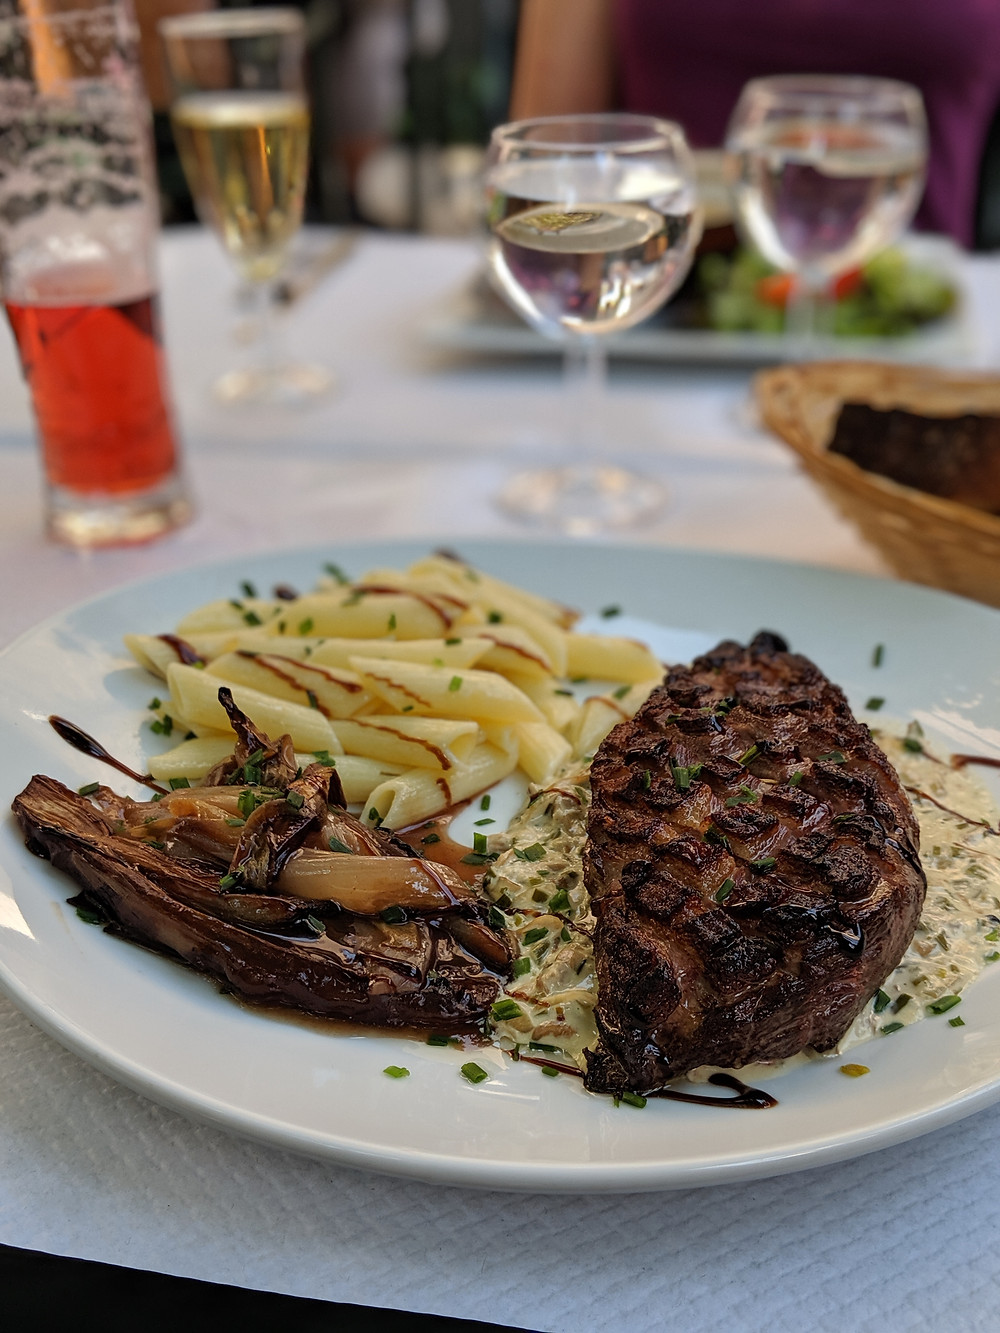 Close up shot of grilled duck on a bed of creamy mushrooms with a side of pasta and grilled endives.